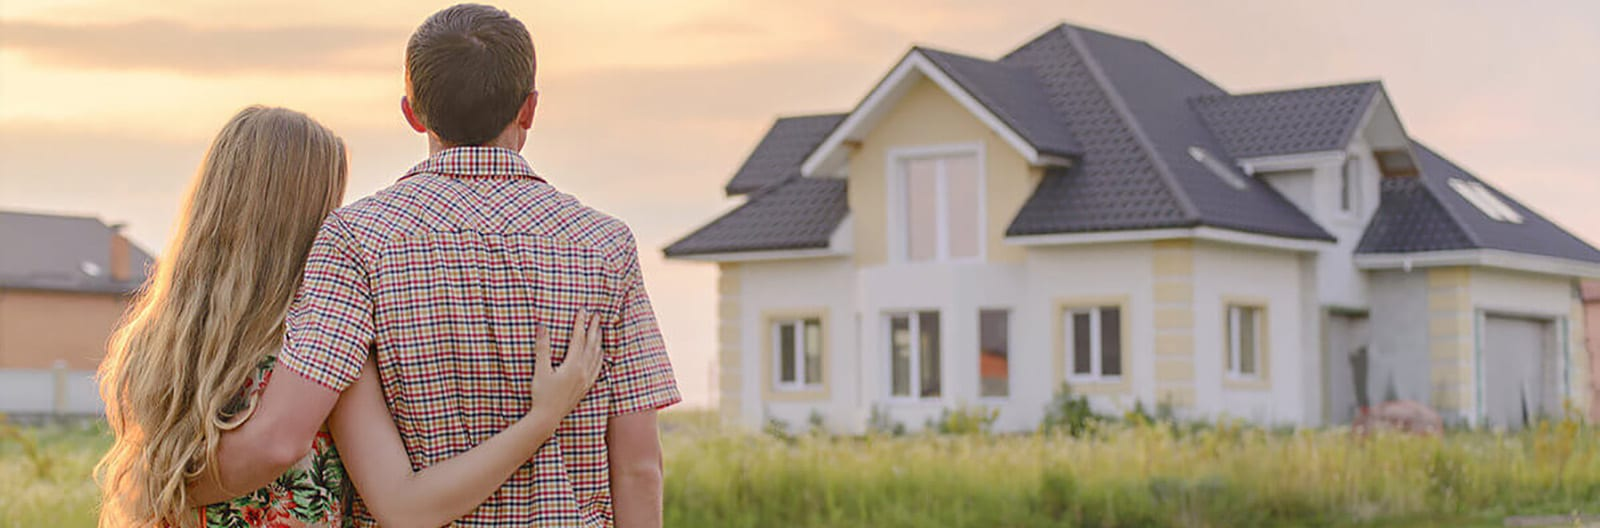 Things You Need To Know Before You Buy A Home